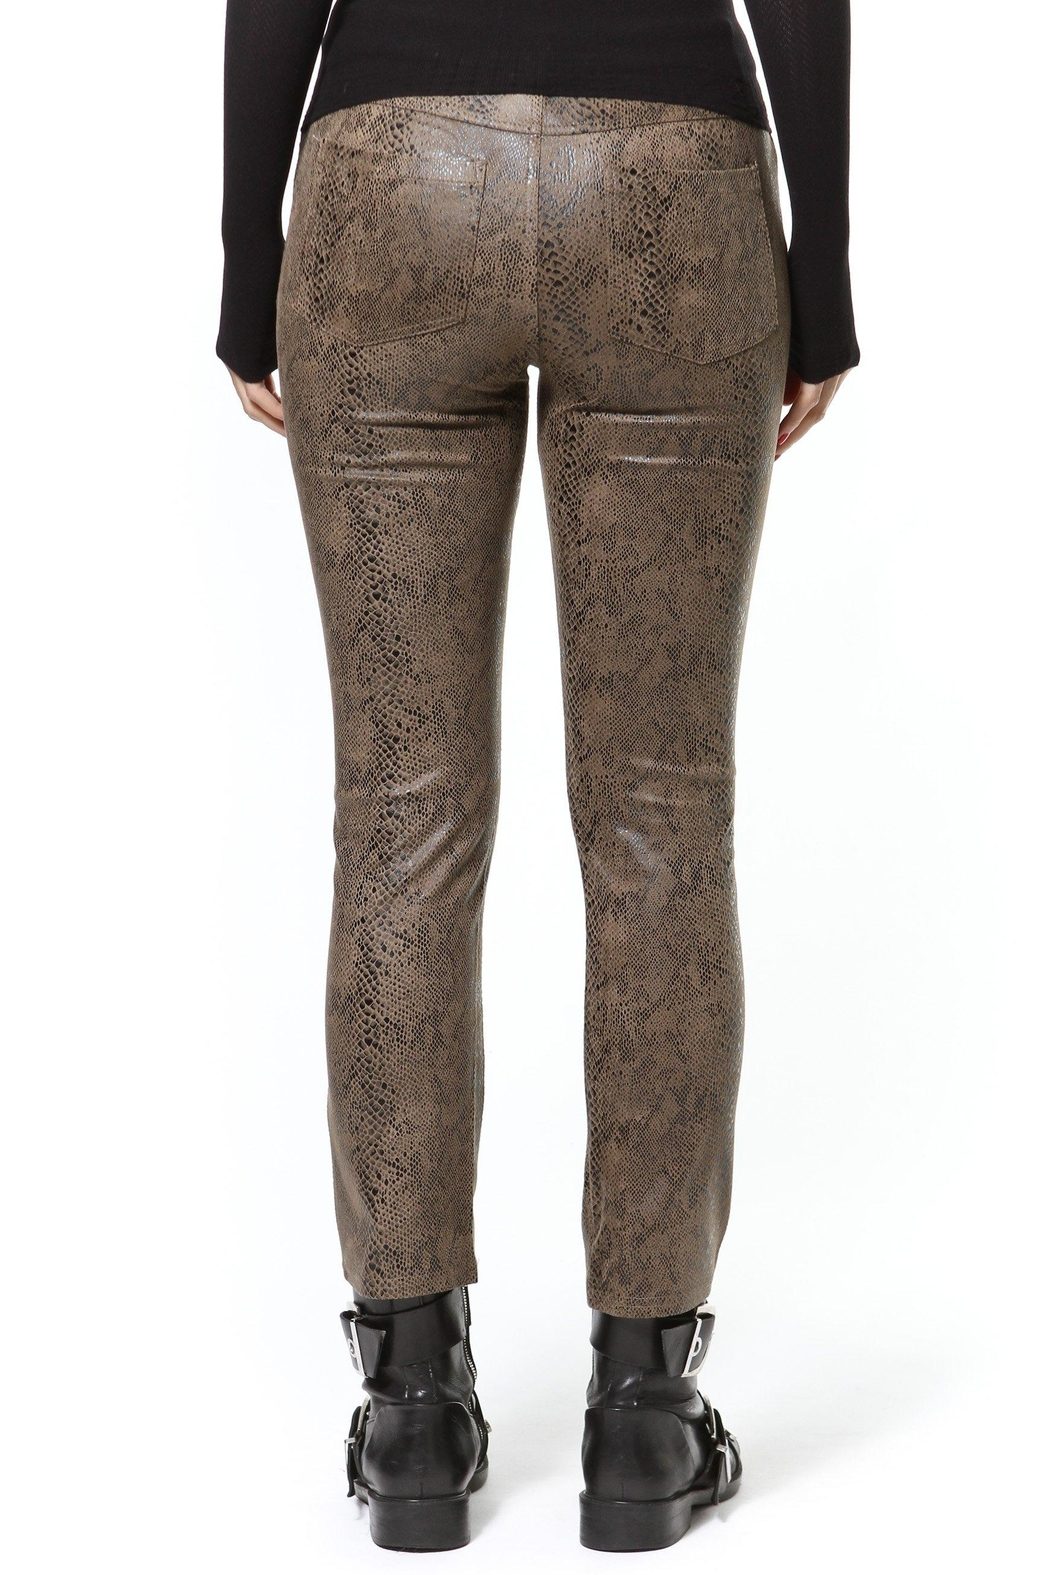 Madonna & Co Snake Stretch Jean - Side Cropped Image